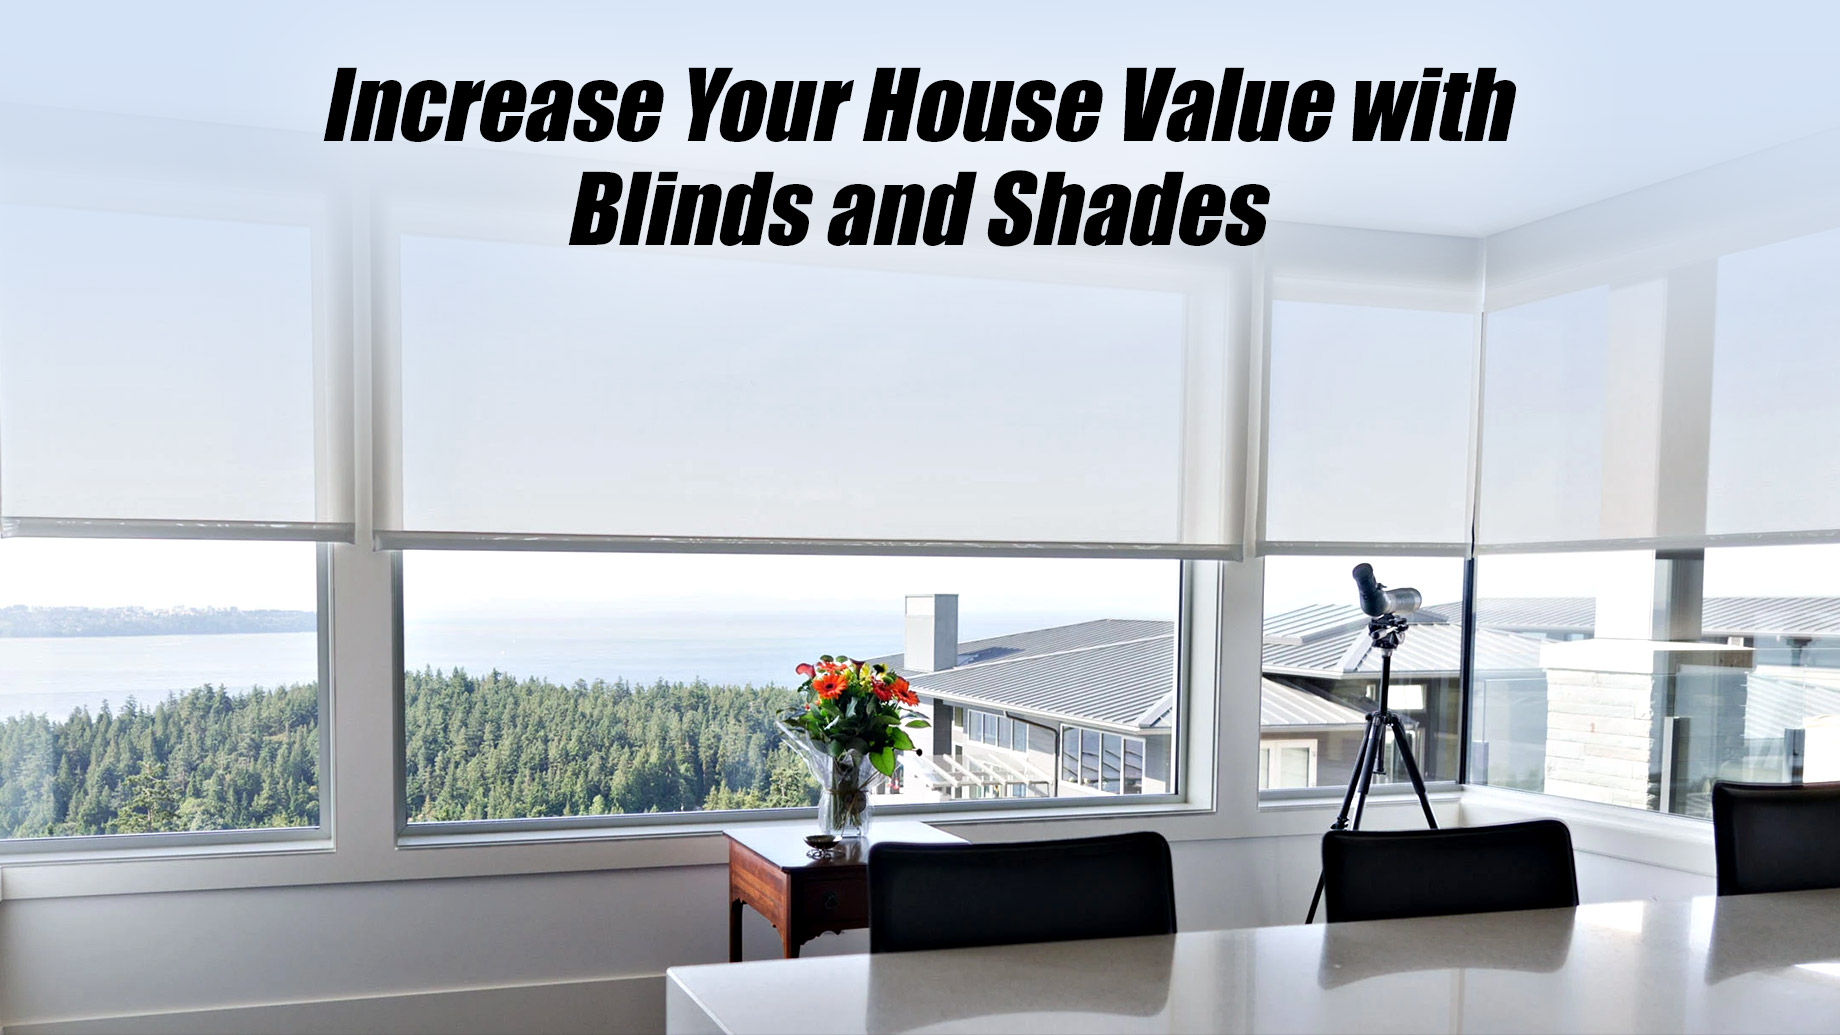 Increase Your House Value with Blinds and Shades